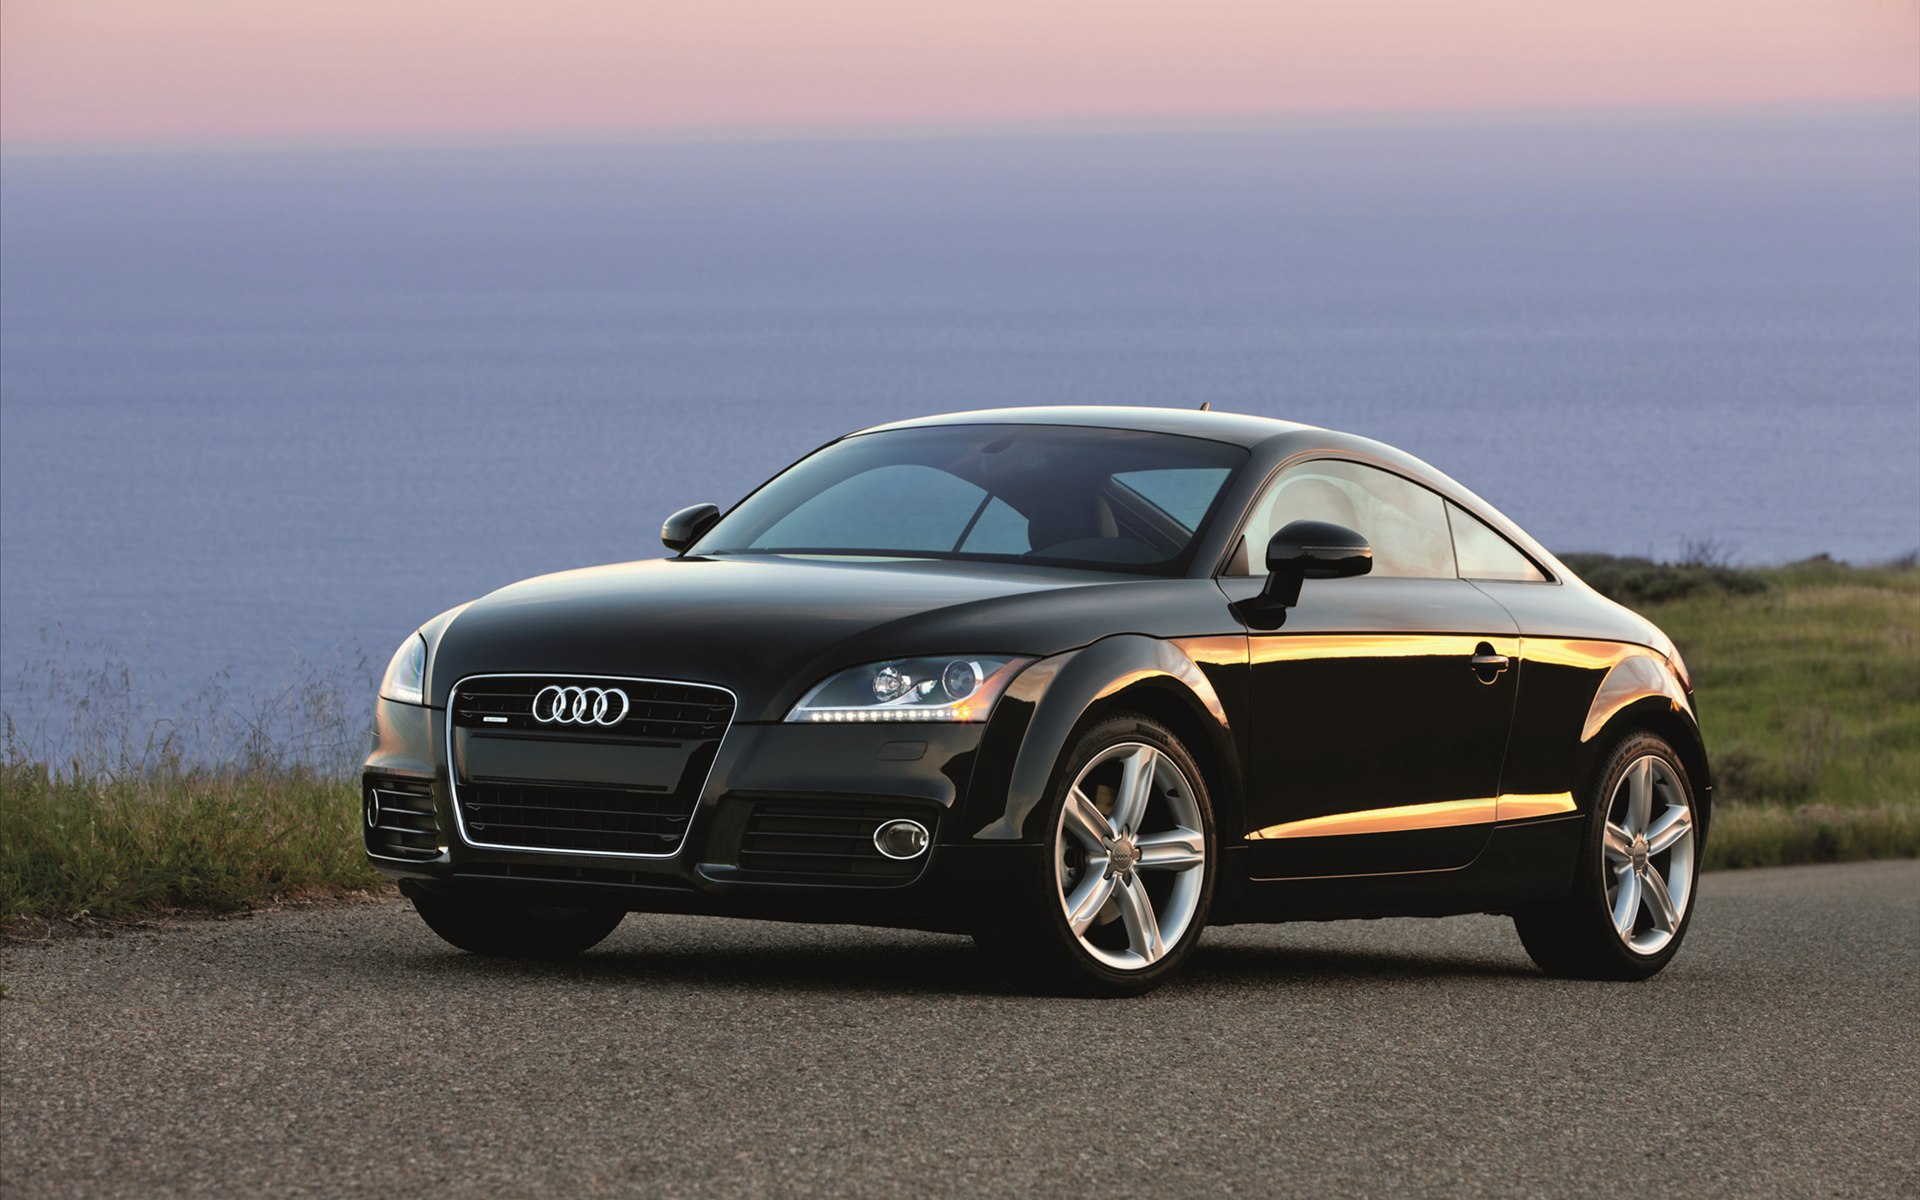 2012 audi tt coupe wallpaper hd car wallpapers id 2331. Black Bedroom Furniture Sets. Home Design Ideas